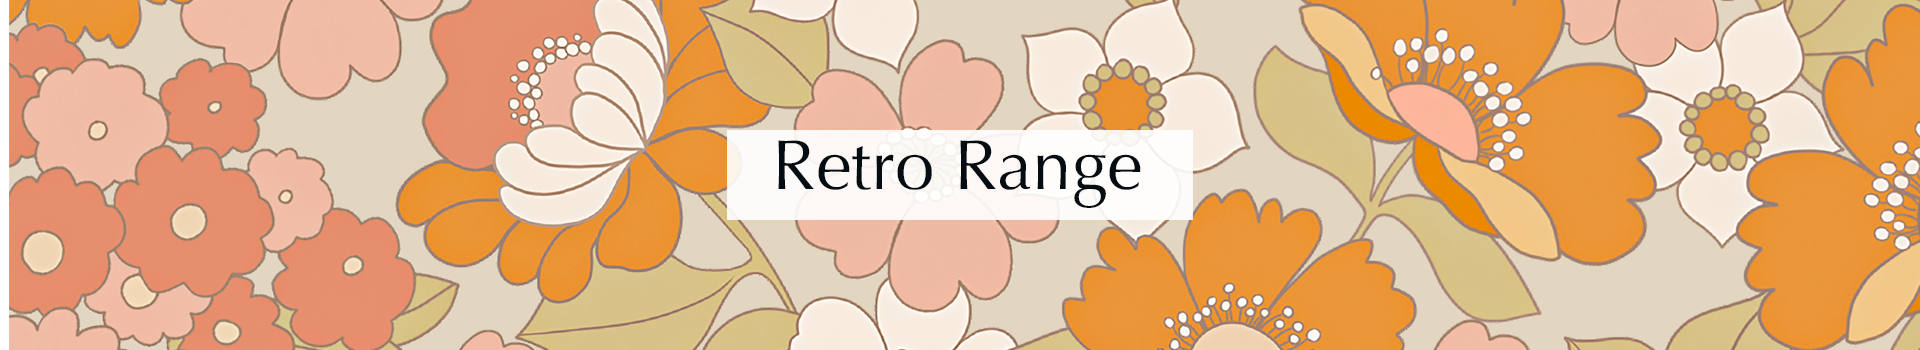 retro-range-category-banner-celina-digby.png